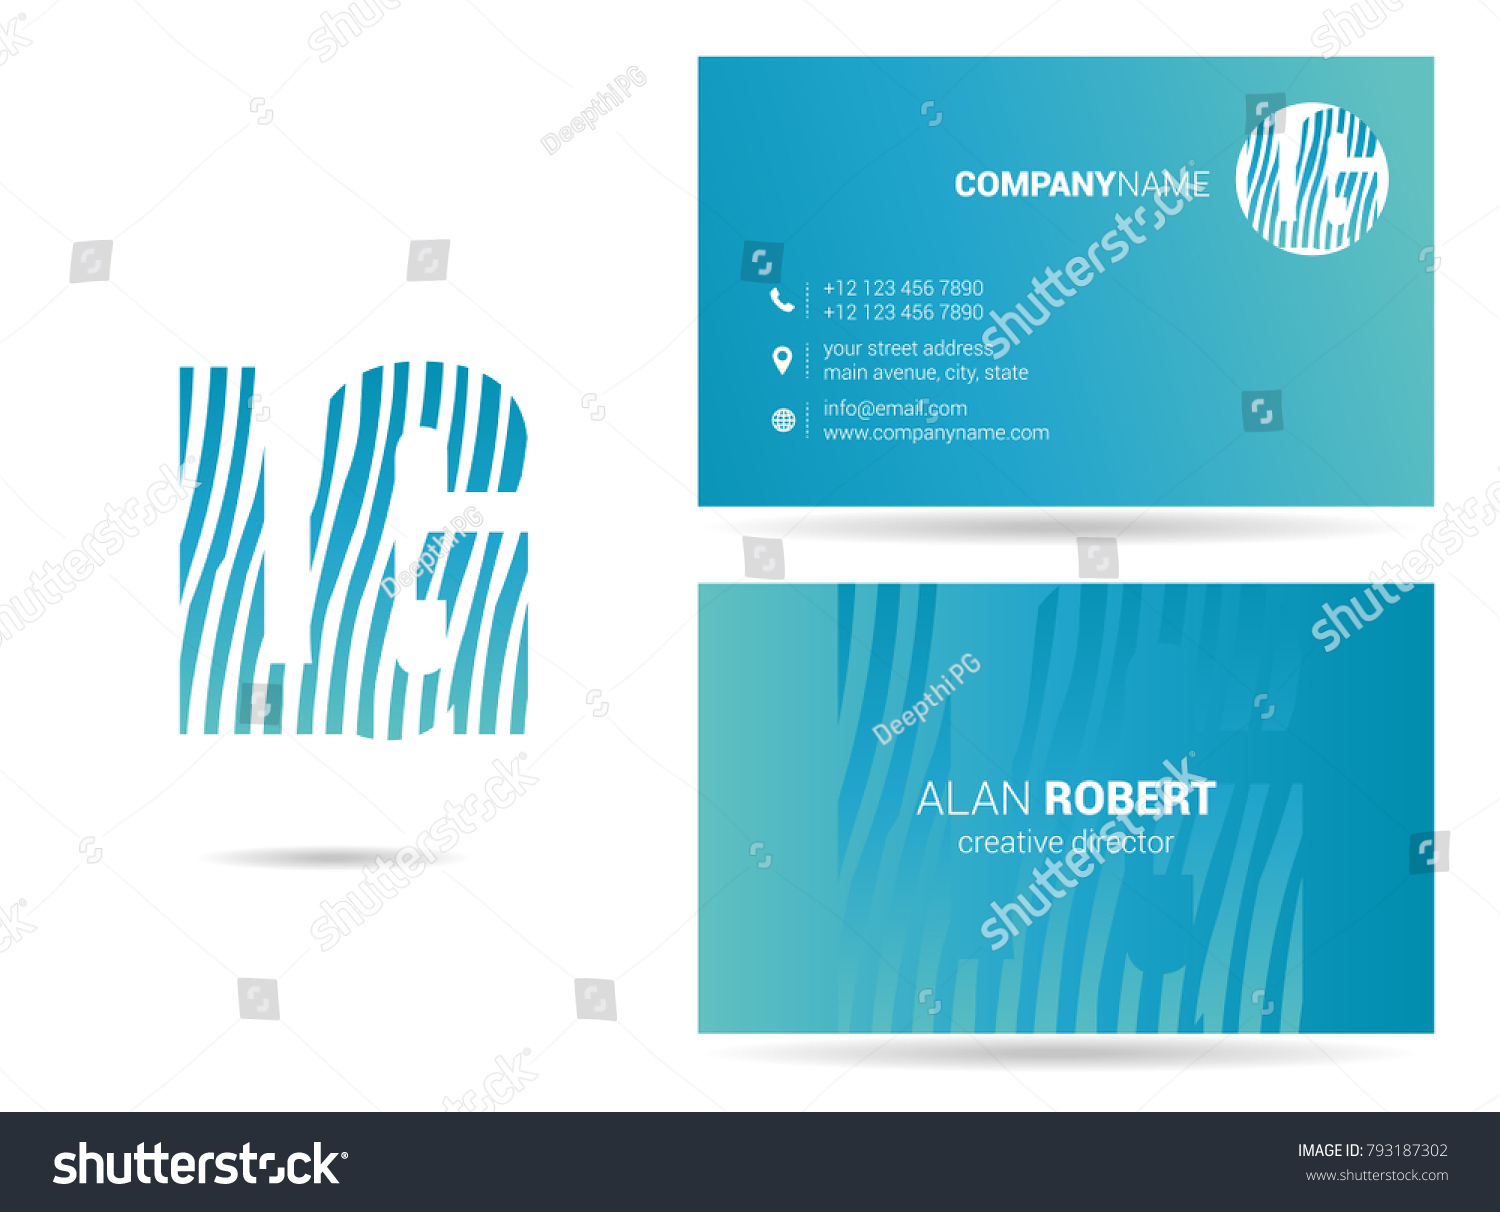 L g joint logo line letter stock vector hd royalty free 793187302 l g joint logo line letter design with business card template thecheapjerseys Image collections